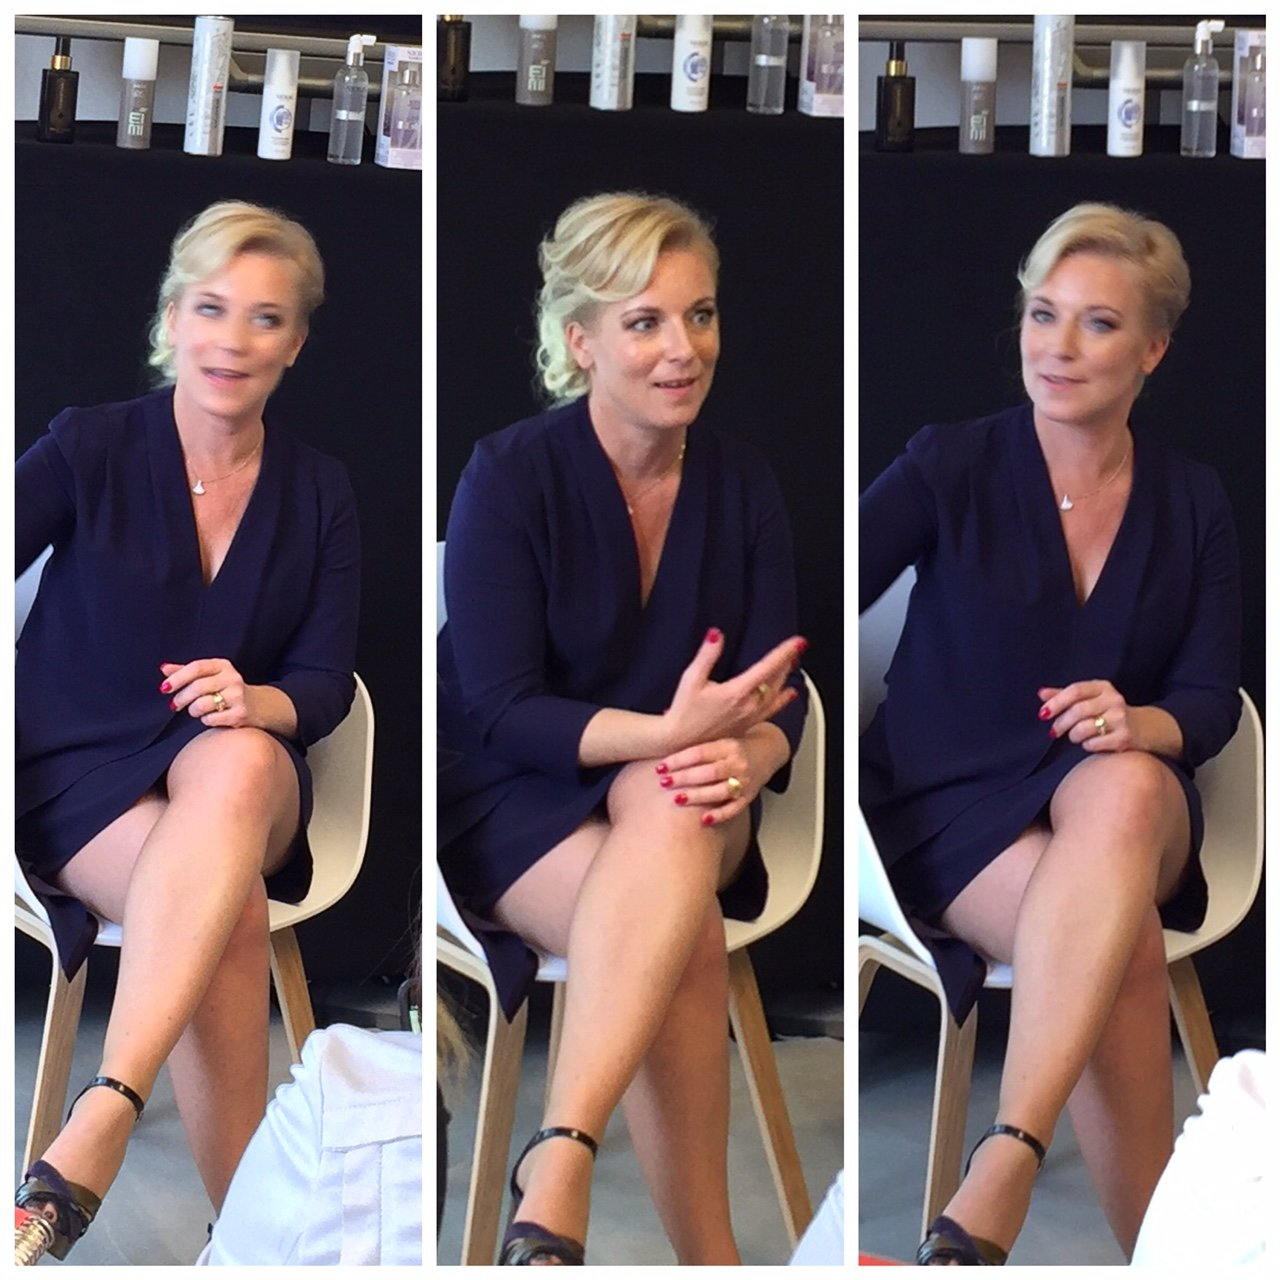 Sylvie Moreau, President of Coty Professional Beauty